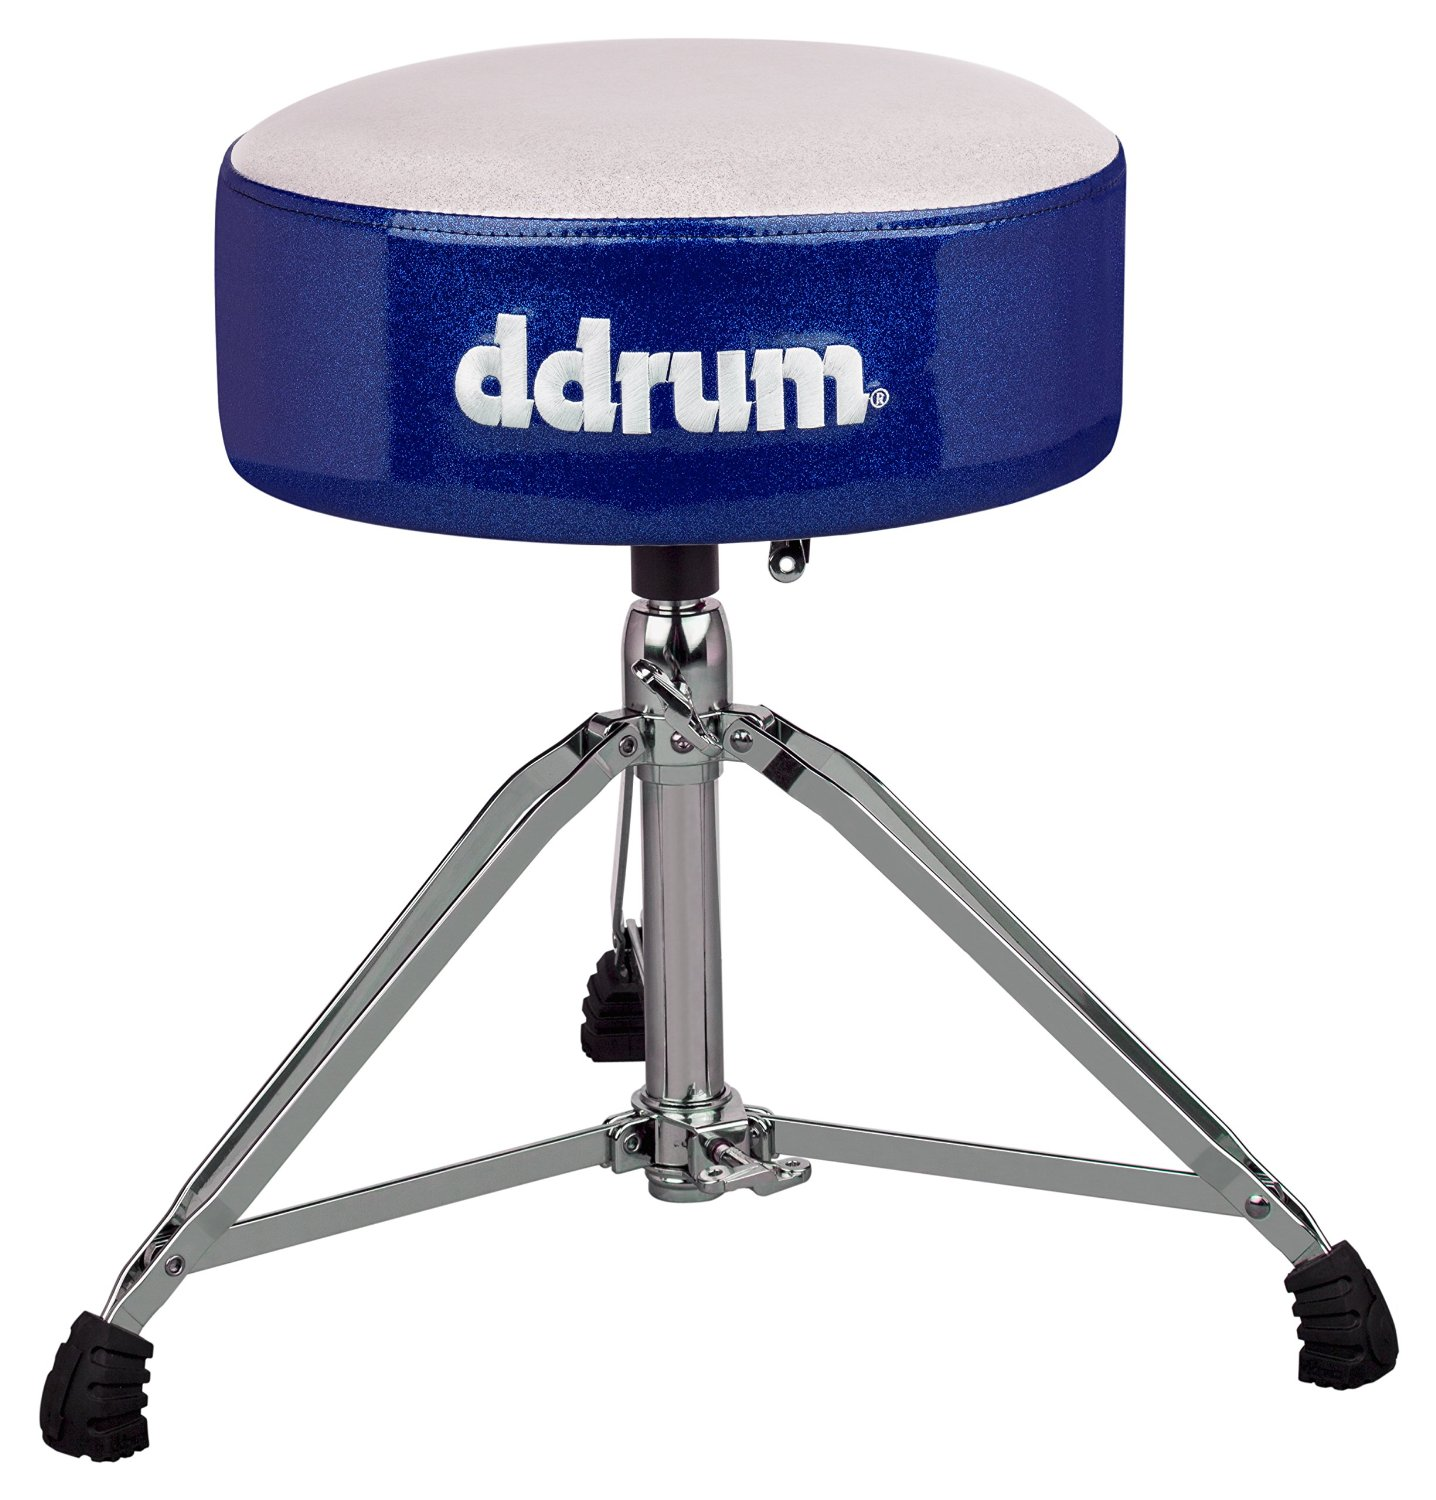 "dDrum Mercury Series Fat Throne with 5.5"" Thick Padding - White Top/Blue Side (MFAT WB)"